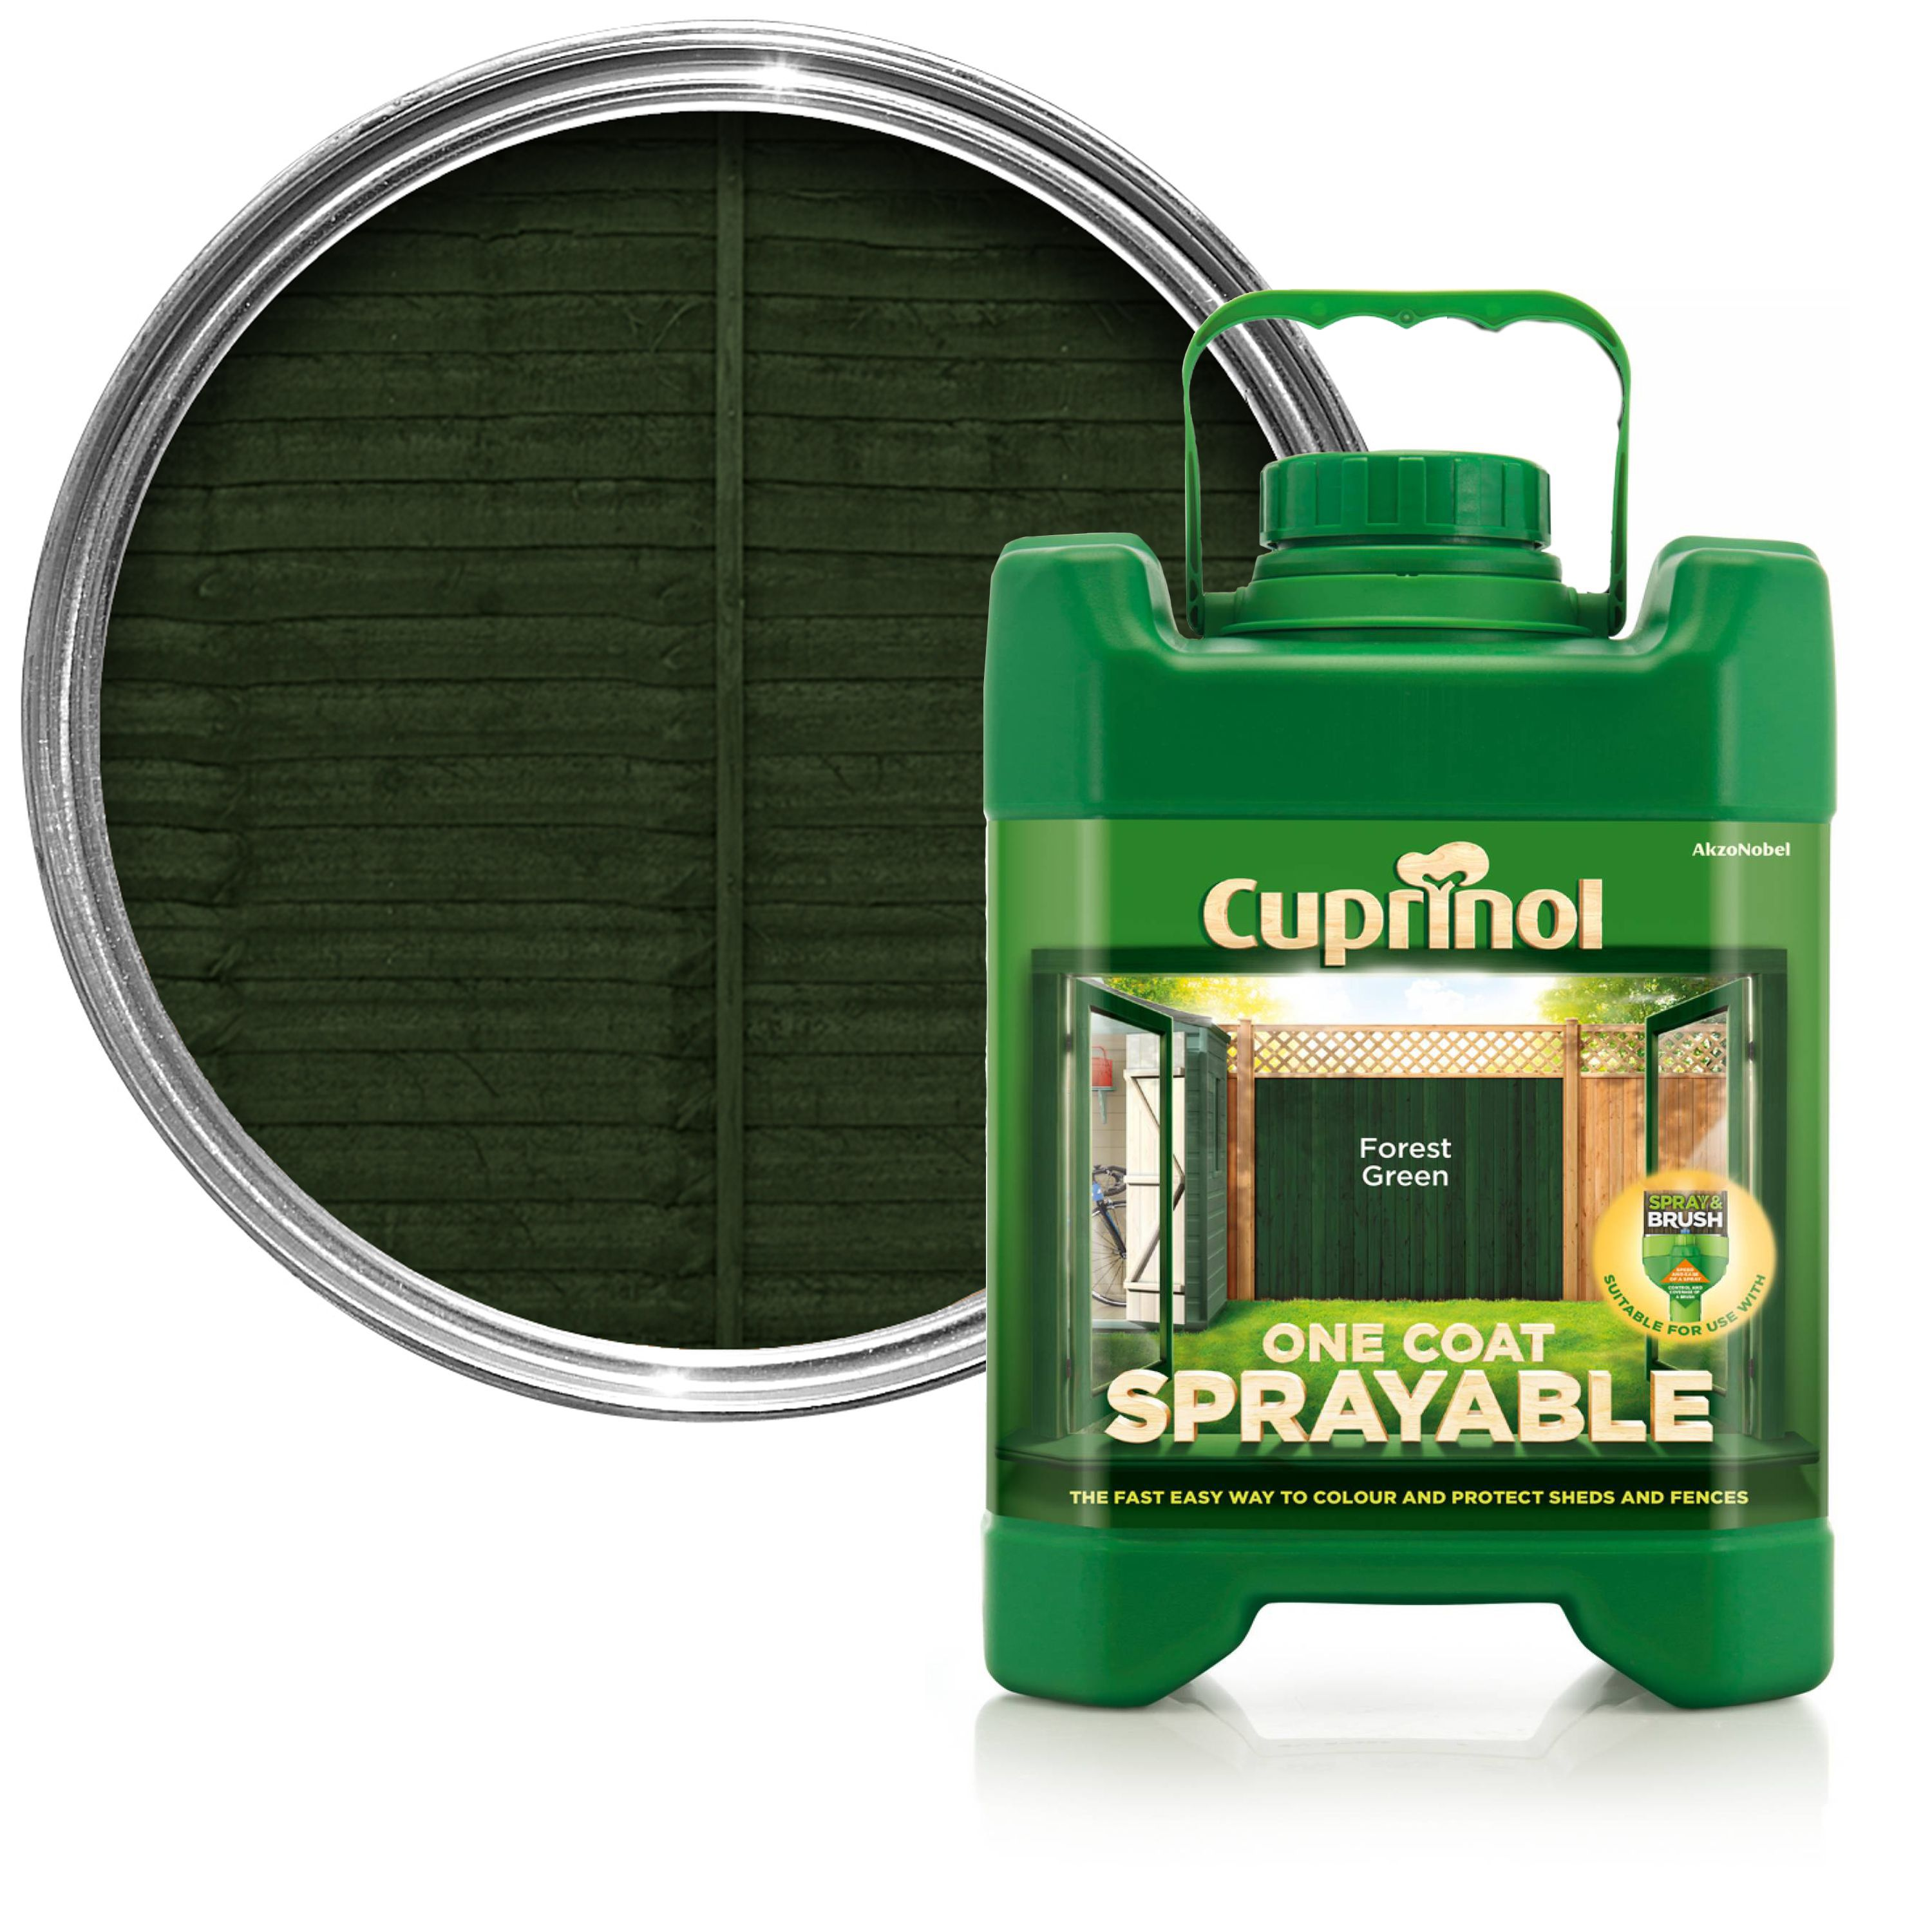 Cuprinol One Coat Sprayable Forest Green Shed & Fence Treatment 5l